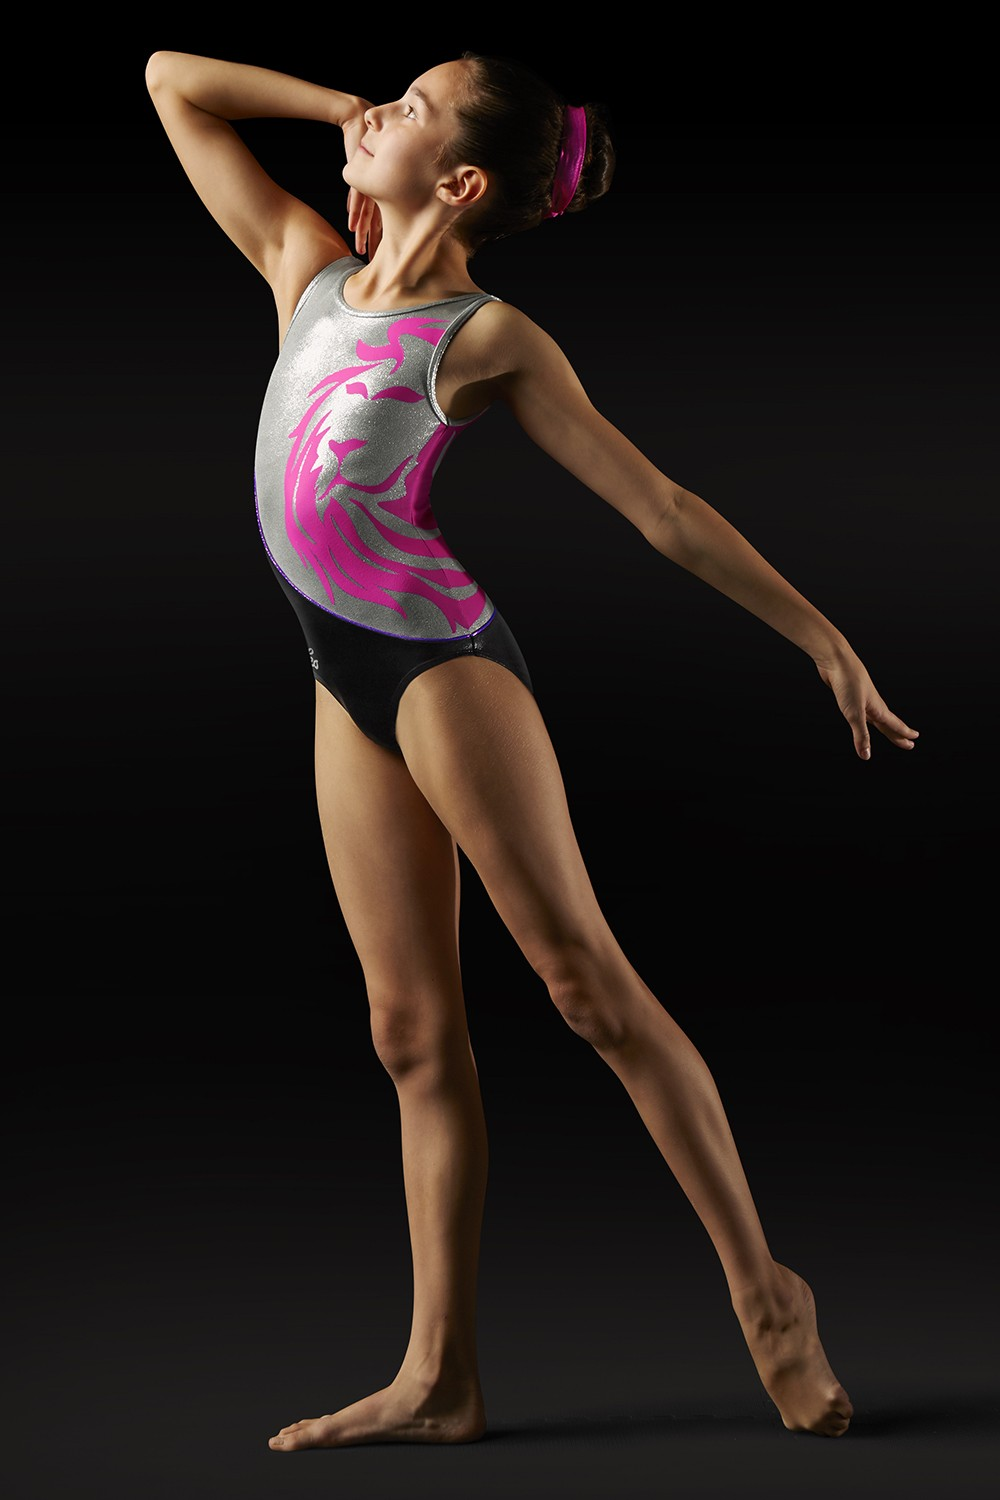 Large Leo Lion Tank Leotard Girl's Gymnastics Leotards